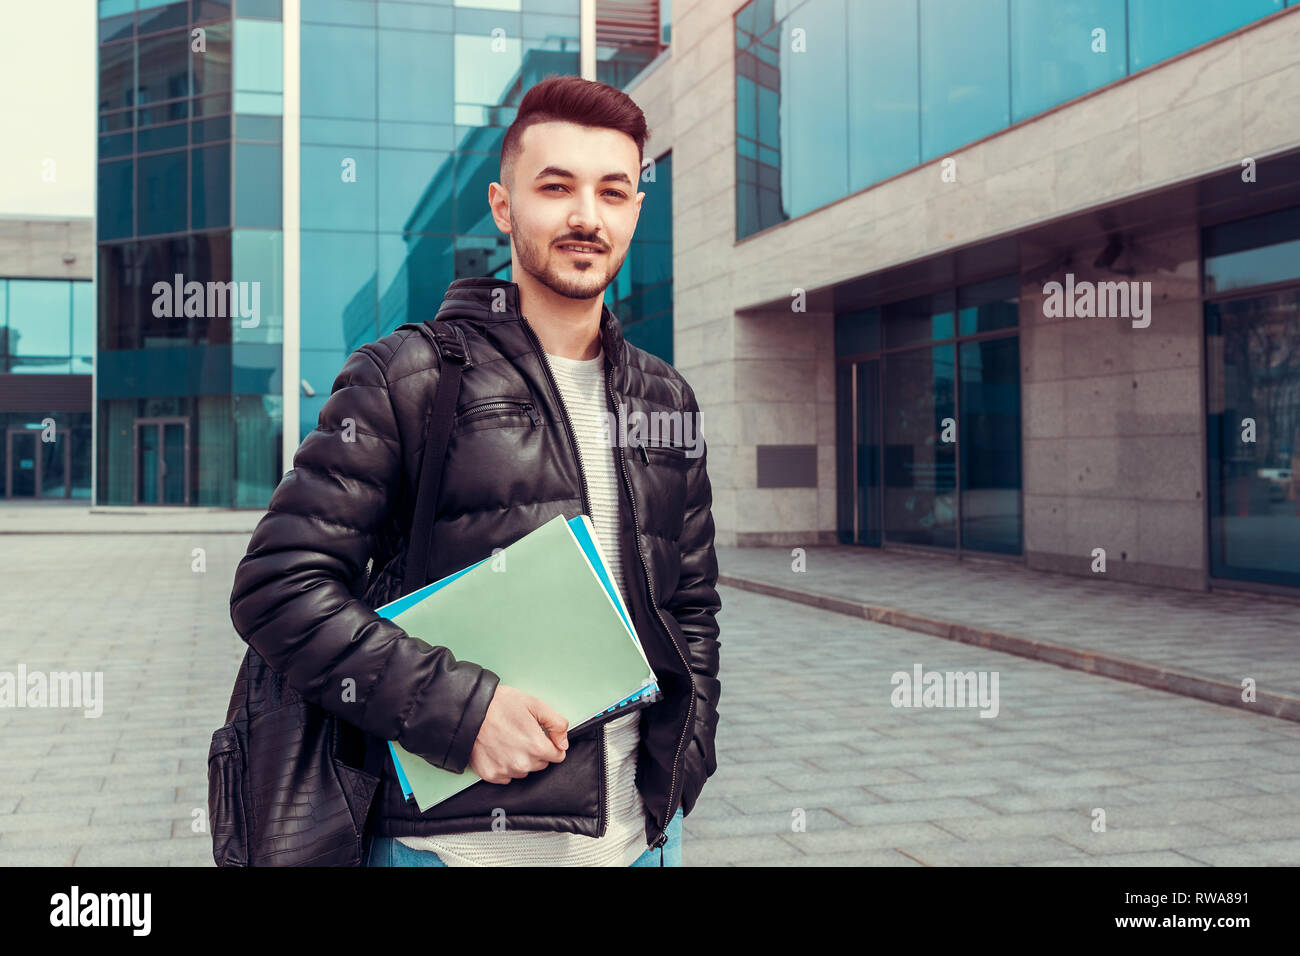 Arabian student holding copybooks by modern university outside. Young happy man with backpack looking at camera - Stock Image